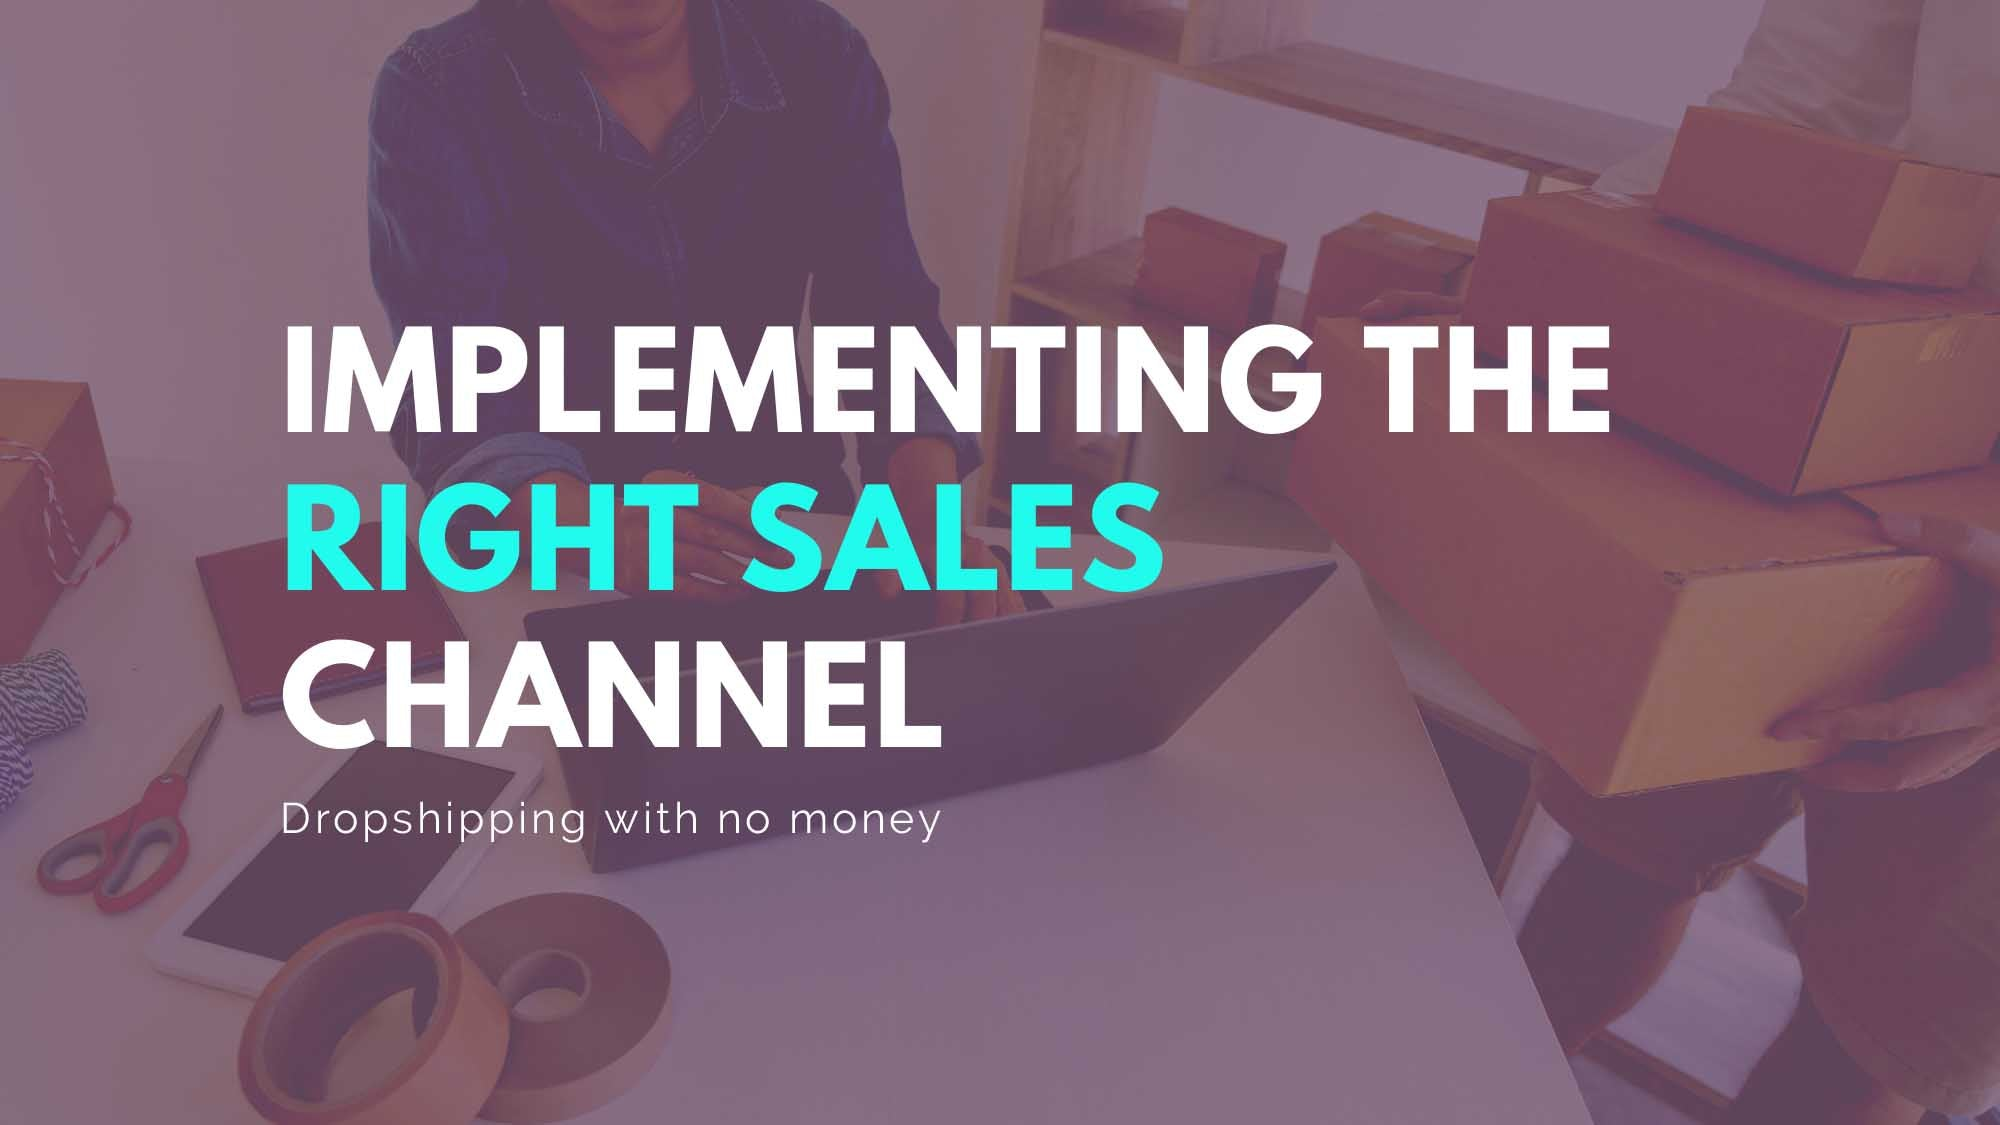 Implementing The Right Sales Channel-DropshipUSA